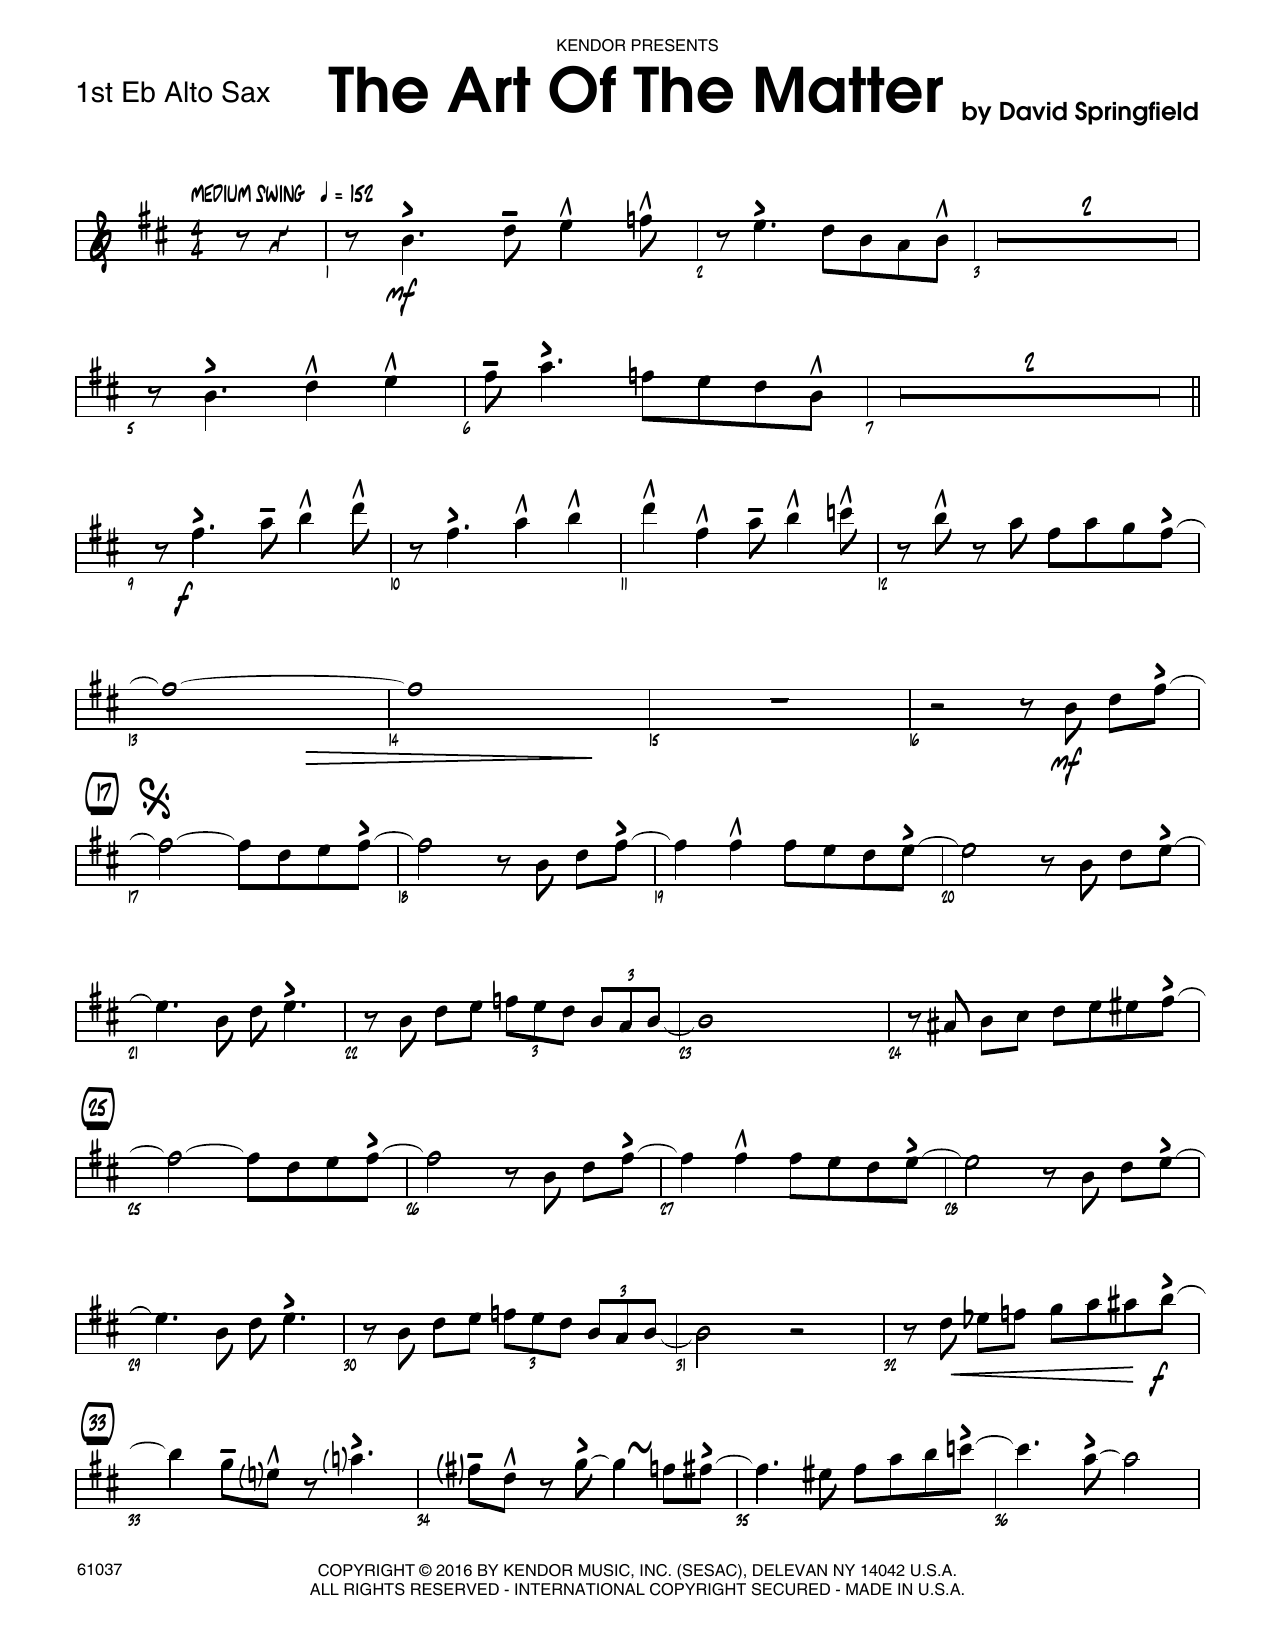 The Art Of The Matter - 1st Eb Alto Saxophone Sheet Music